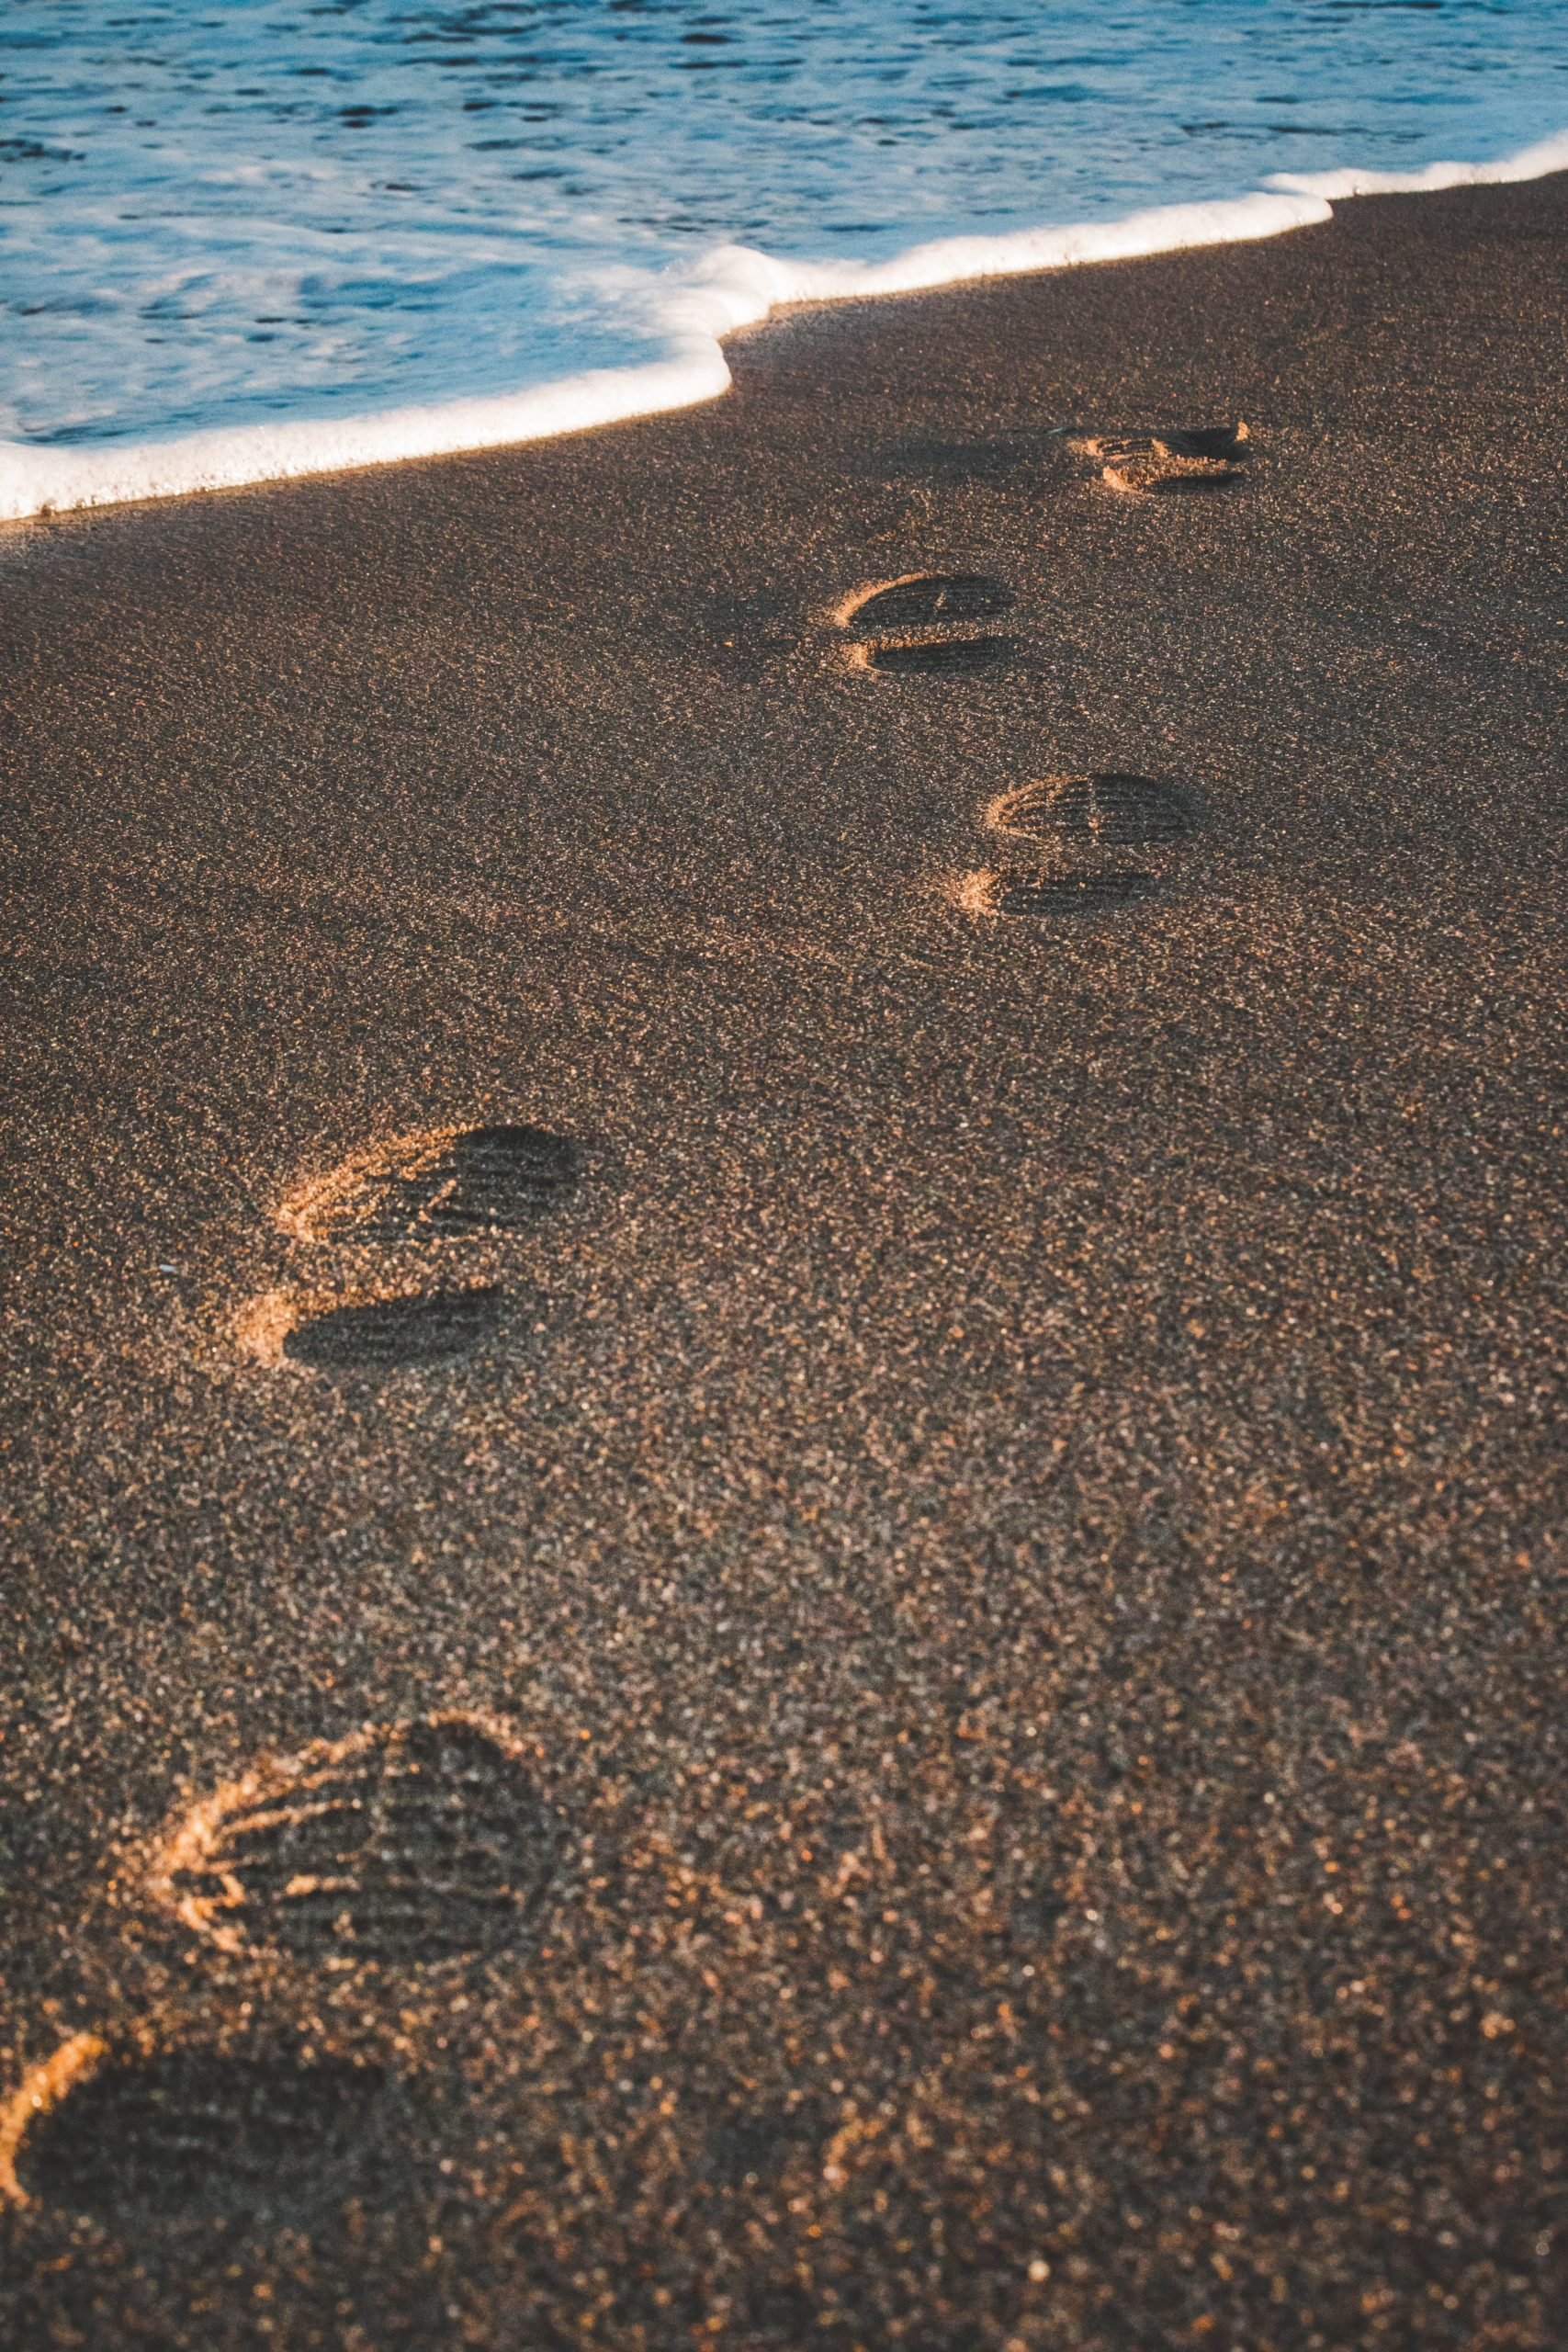 footprints on a sandy beach